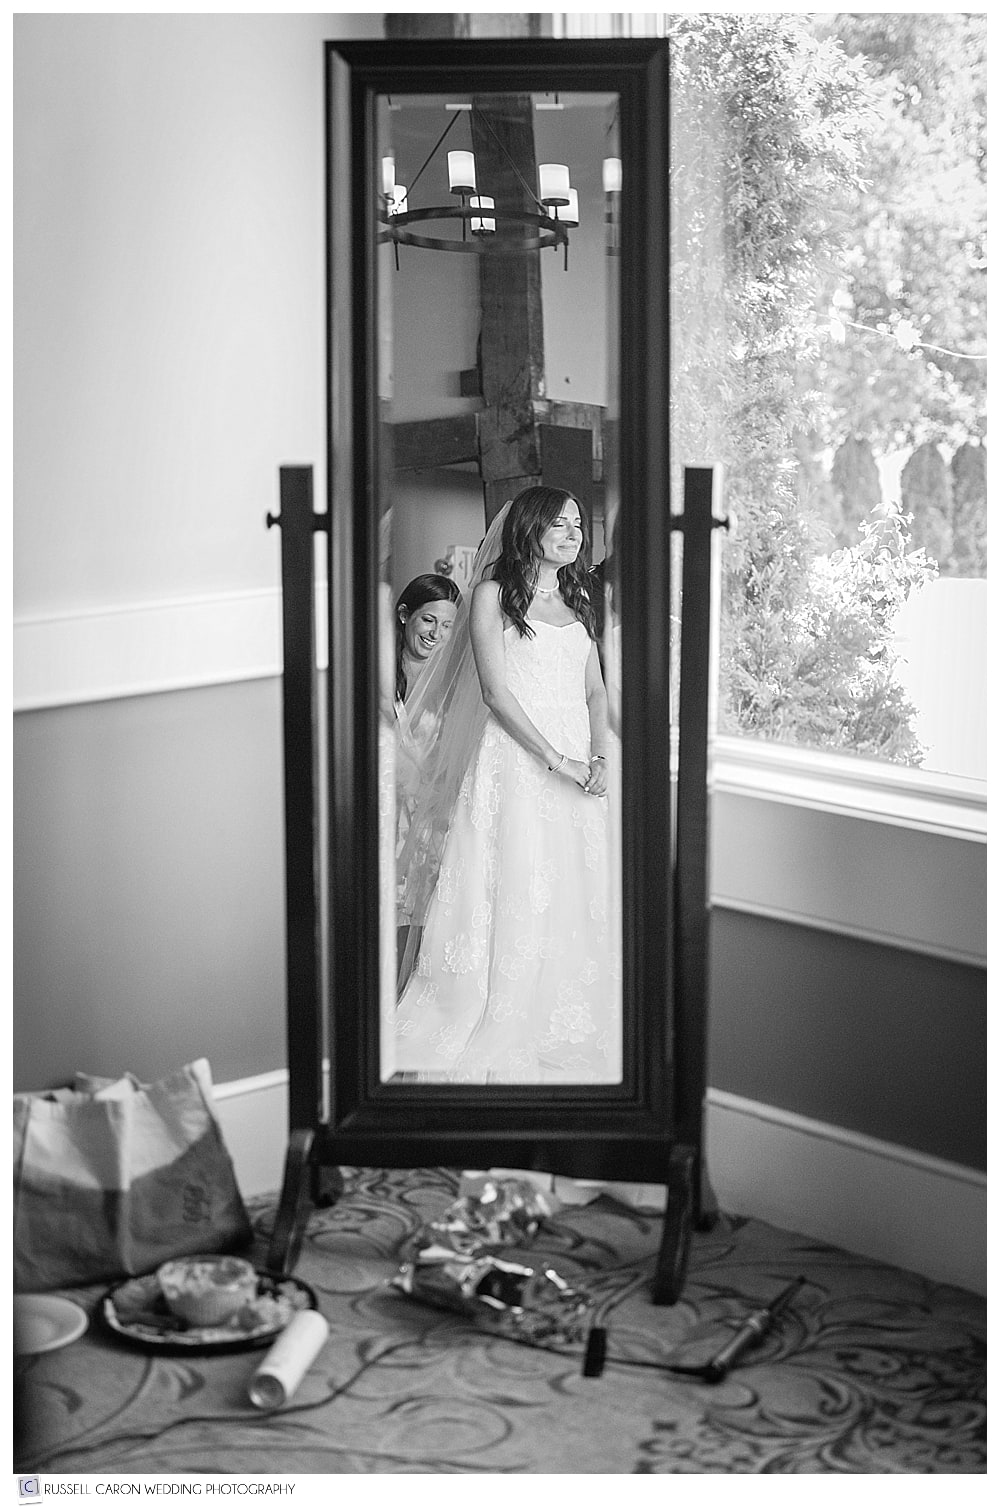 bride getting dressed, in the mirror